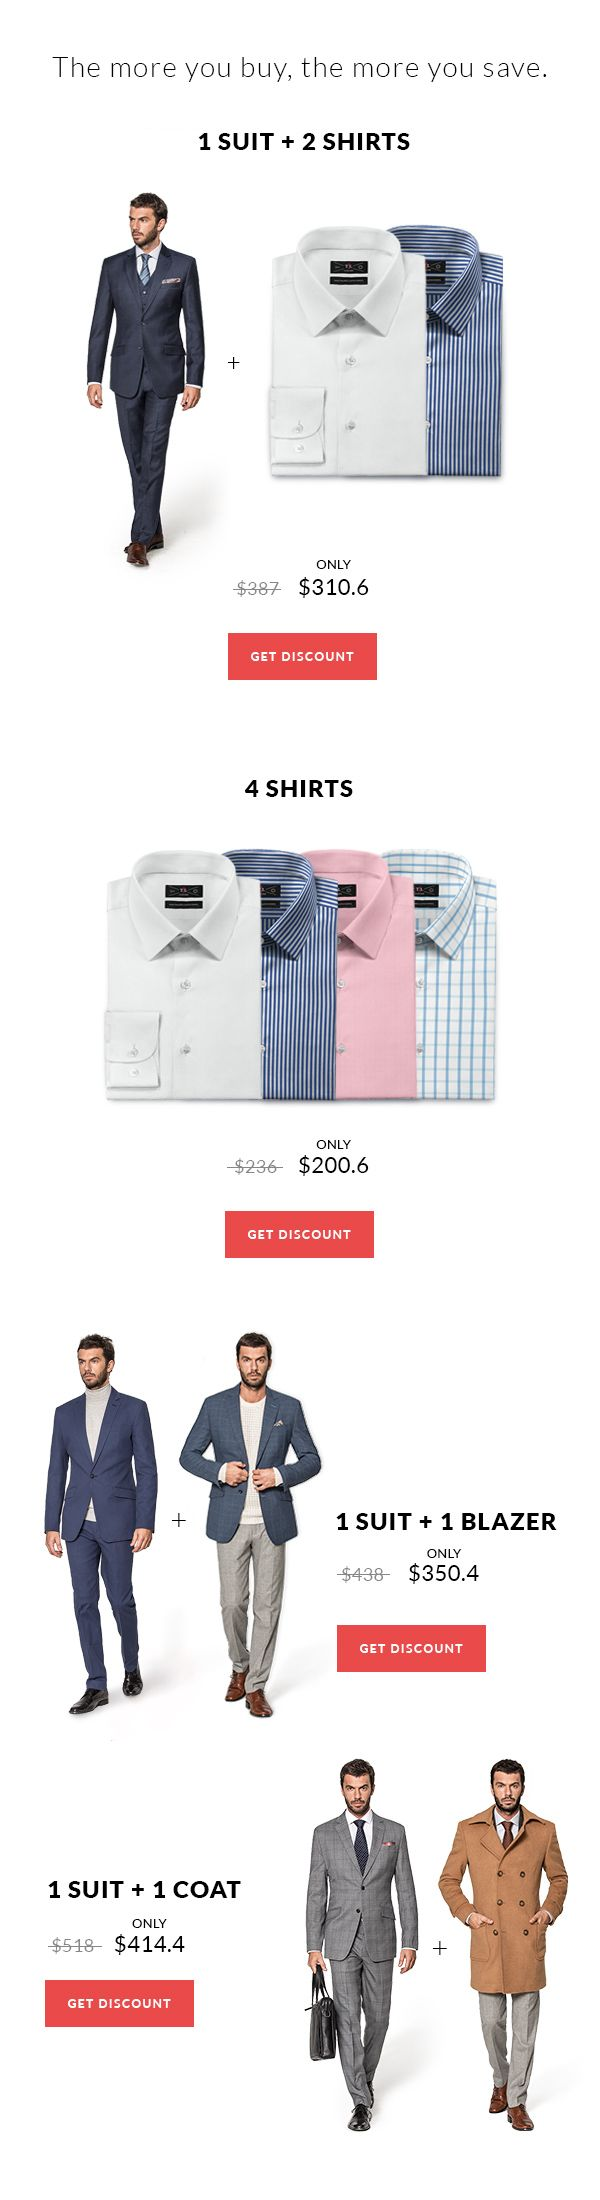 Black Friday! 30% OFF: Tailor4less.com Use the code: BFTAILOR15